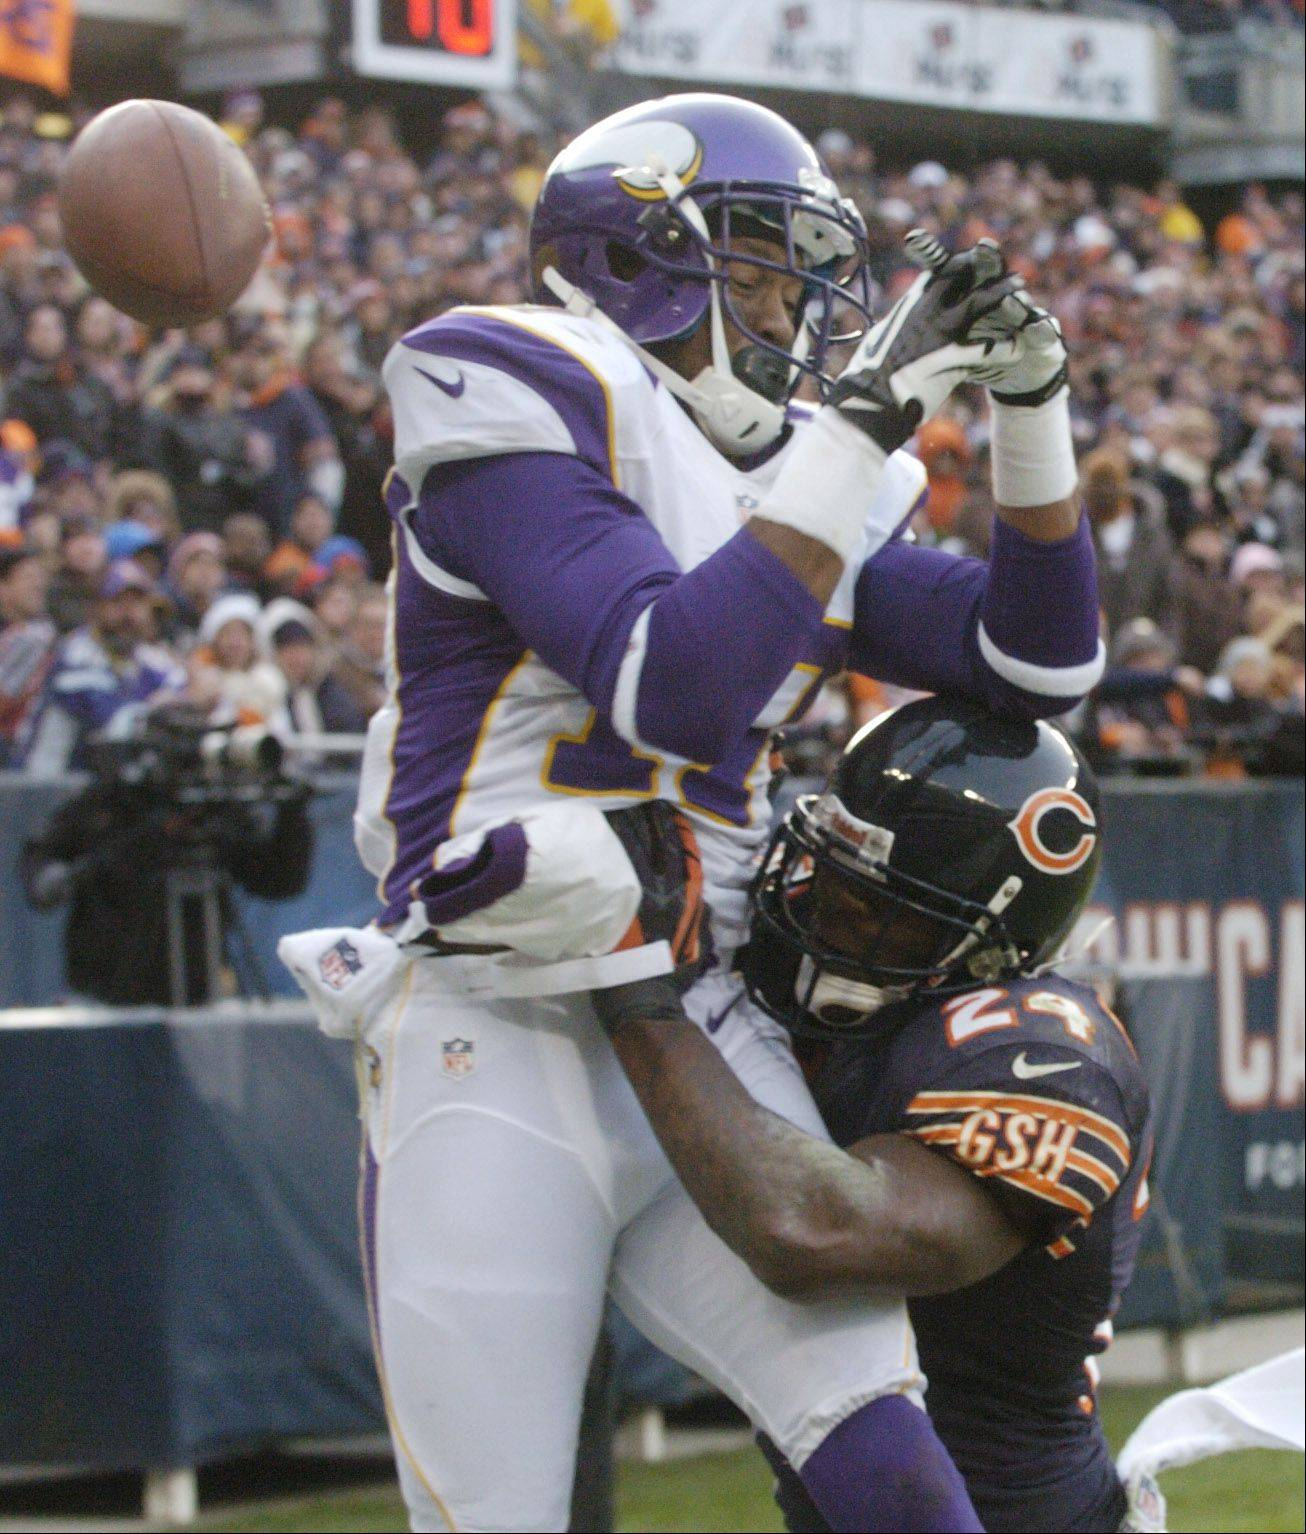 Chicago Bears cornerback Kelvin Hayden saves a touchdown with a defensive play on Minnesota Vikings wide receiver Jarius Wright during the fourth quarter at Soldier Field Sunday.